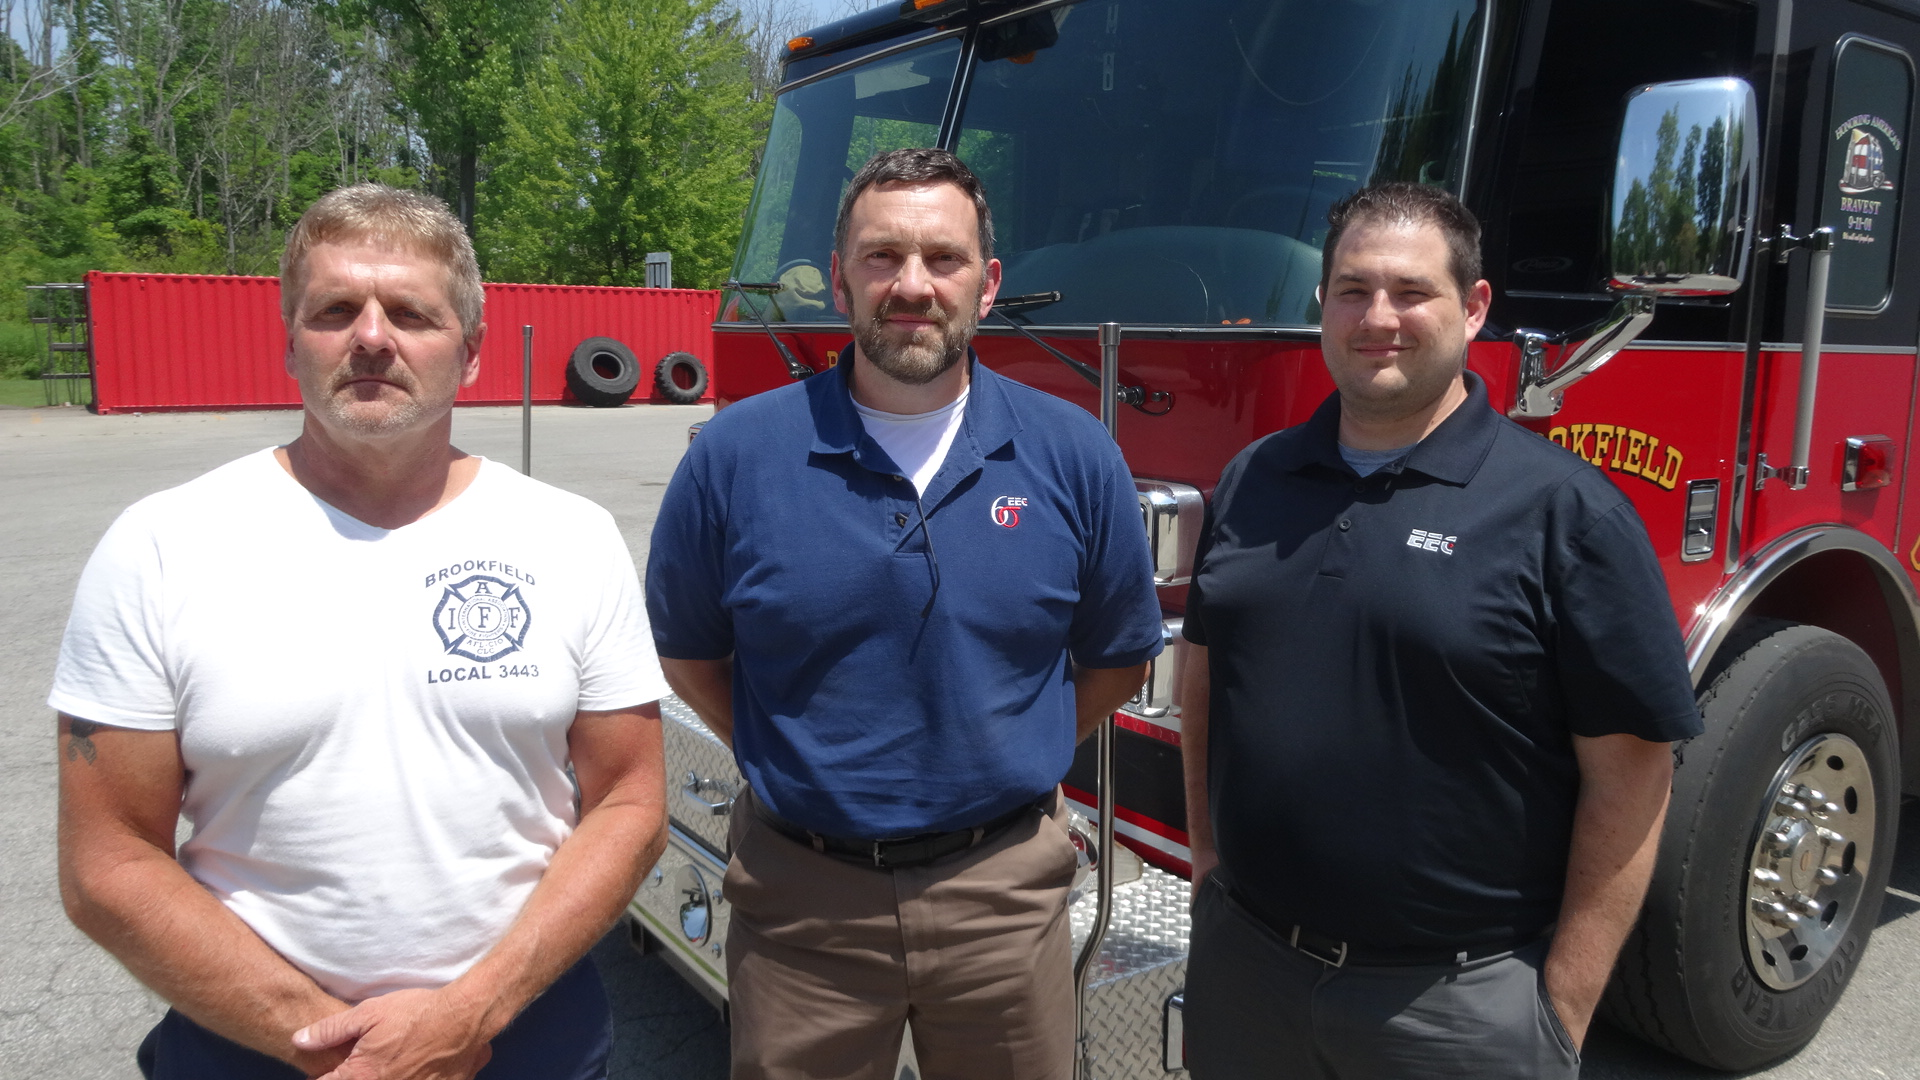 Brookfield Interim Fire Chief Dave Coffy, left; Ellwood Engineered Castings President Pat Callihan, center; and Ellwood Human Relations and Safety Manager Hank Stull.